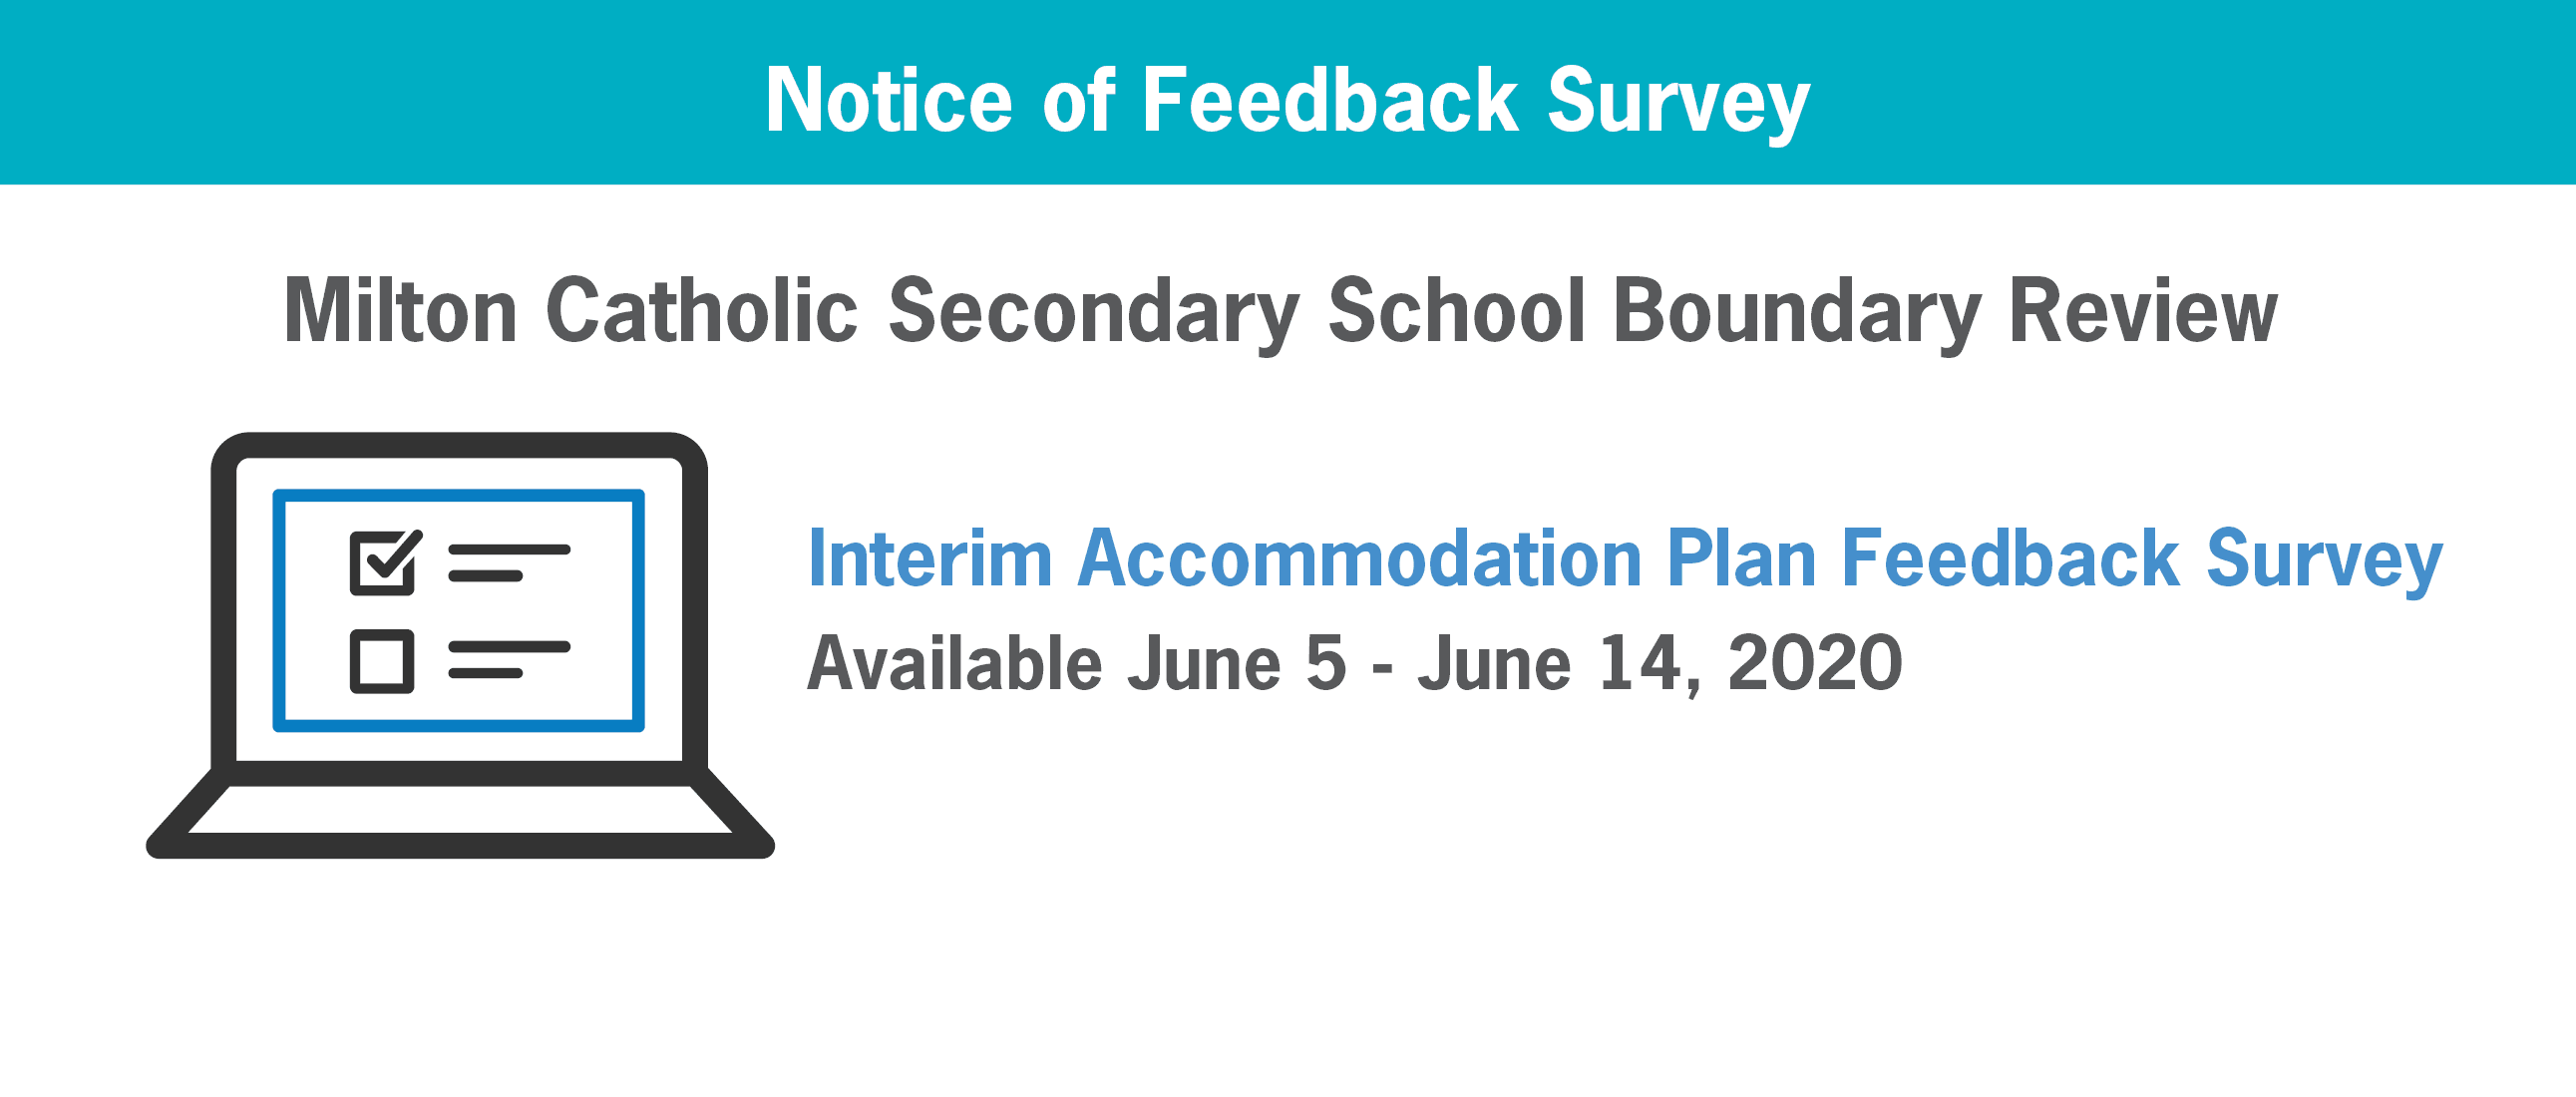 FEEDBACK SURVEY: Milton CSS Boundary Review Interim Accommodation Plan